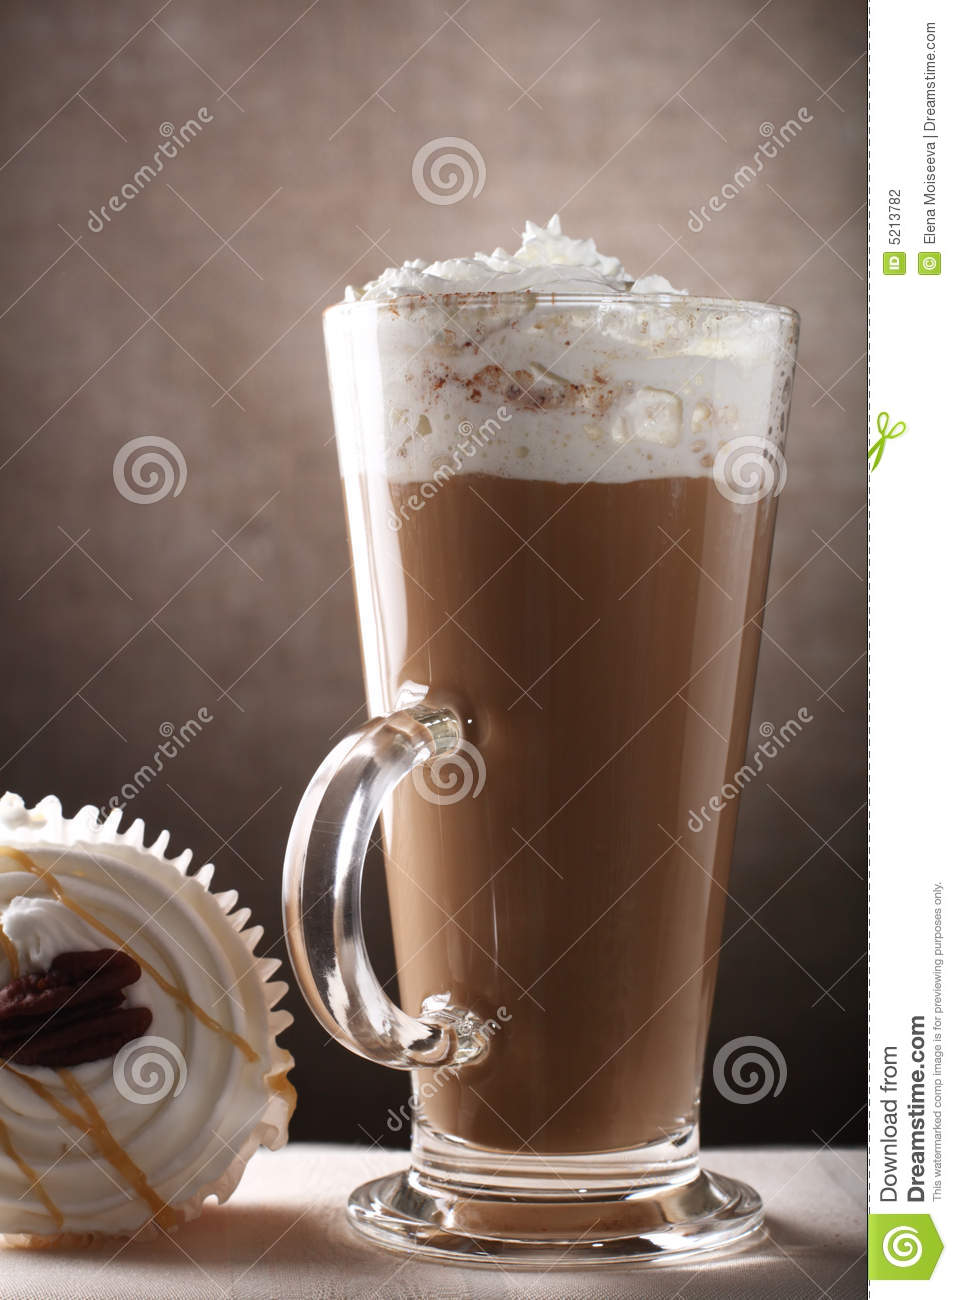 Coffee Latte In Tall Glass With Cup Cake Stock Photo